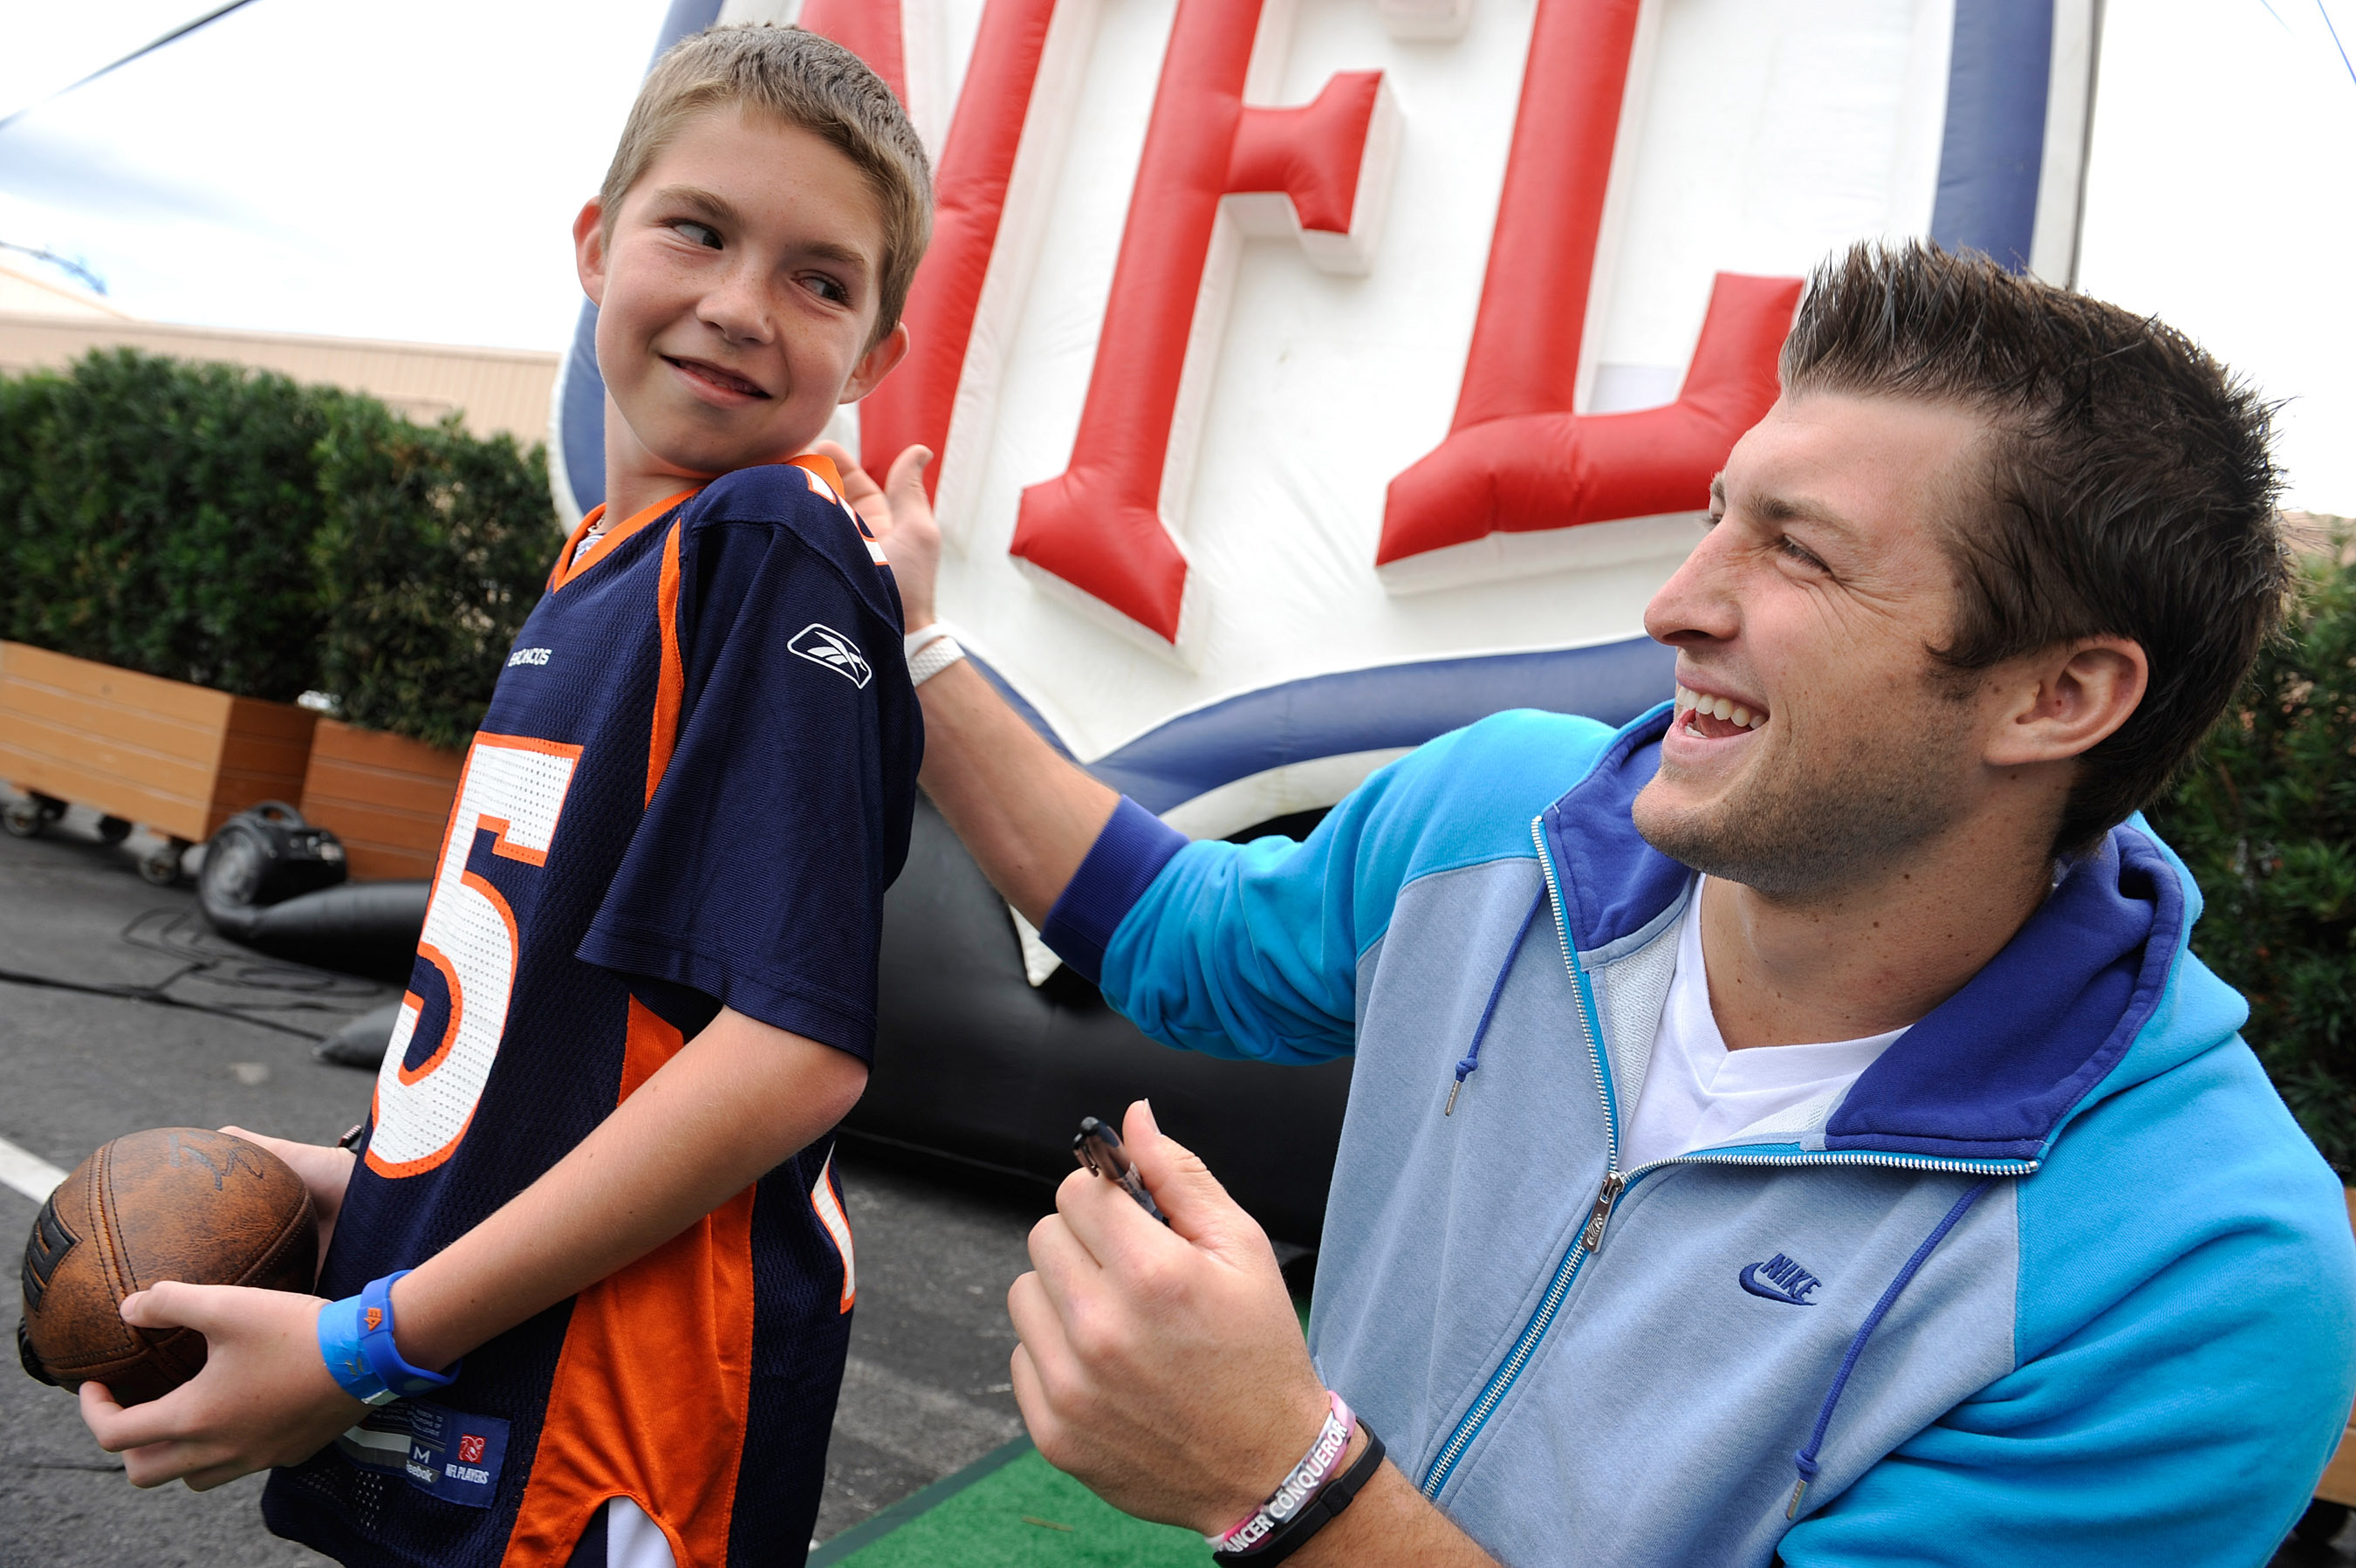 LAKE BUENA VISTA, FL - MAR 04: In this handout image provided by Disney Parks,  Denver Broncos quarterback Tim Tebow autographs a jersey for Cole Hoover, age 11, from Cape Coral, Florida at Disney's Hollywood Studios park in Lake Buena Vista, Florida on M